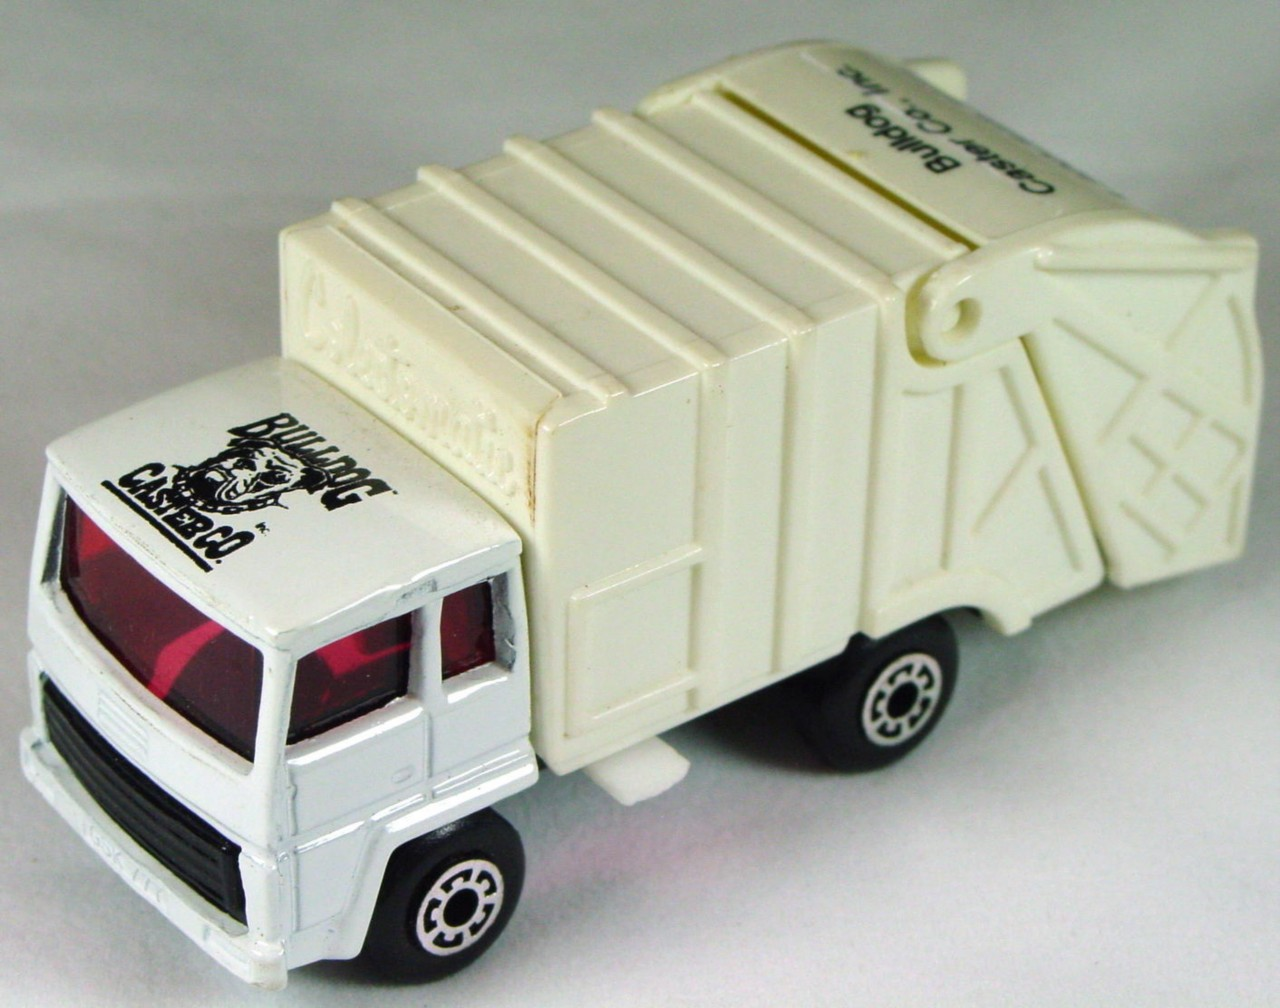 ASAP-CCI 36 D 29 - Refuse Truck White black base Bulldog Castor made in China ASAP